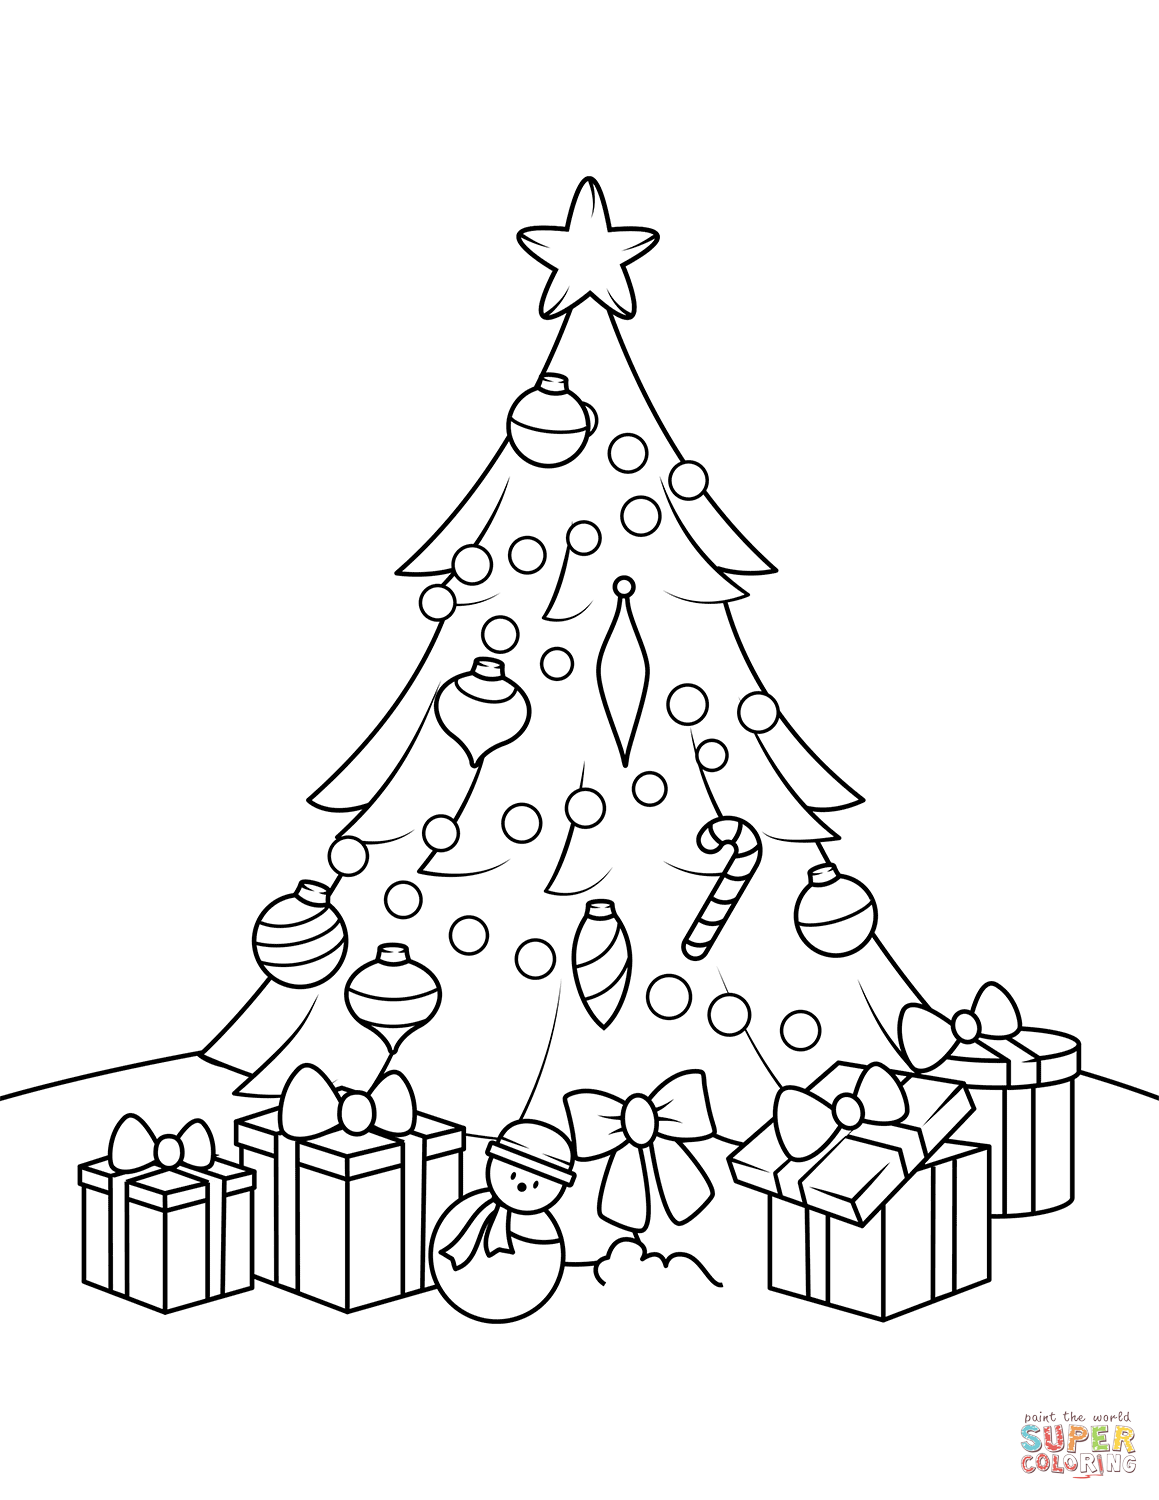 Christmas Tree With Presents Coloring Page From Christmas Tree Category Select From 27 In 2020 Tree Coloring Page Christmas Tree Coloring Page Christmas Tree Pictures